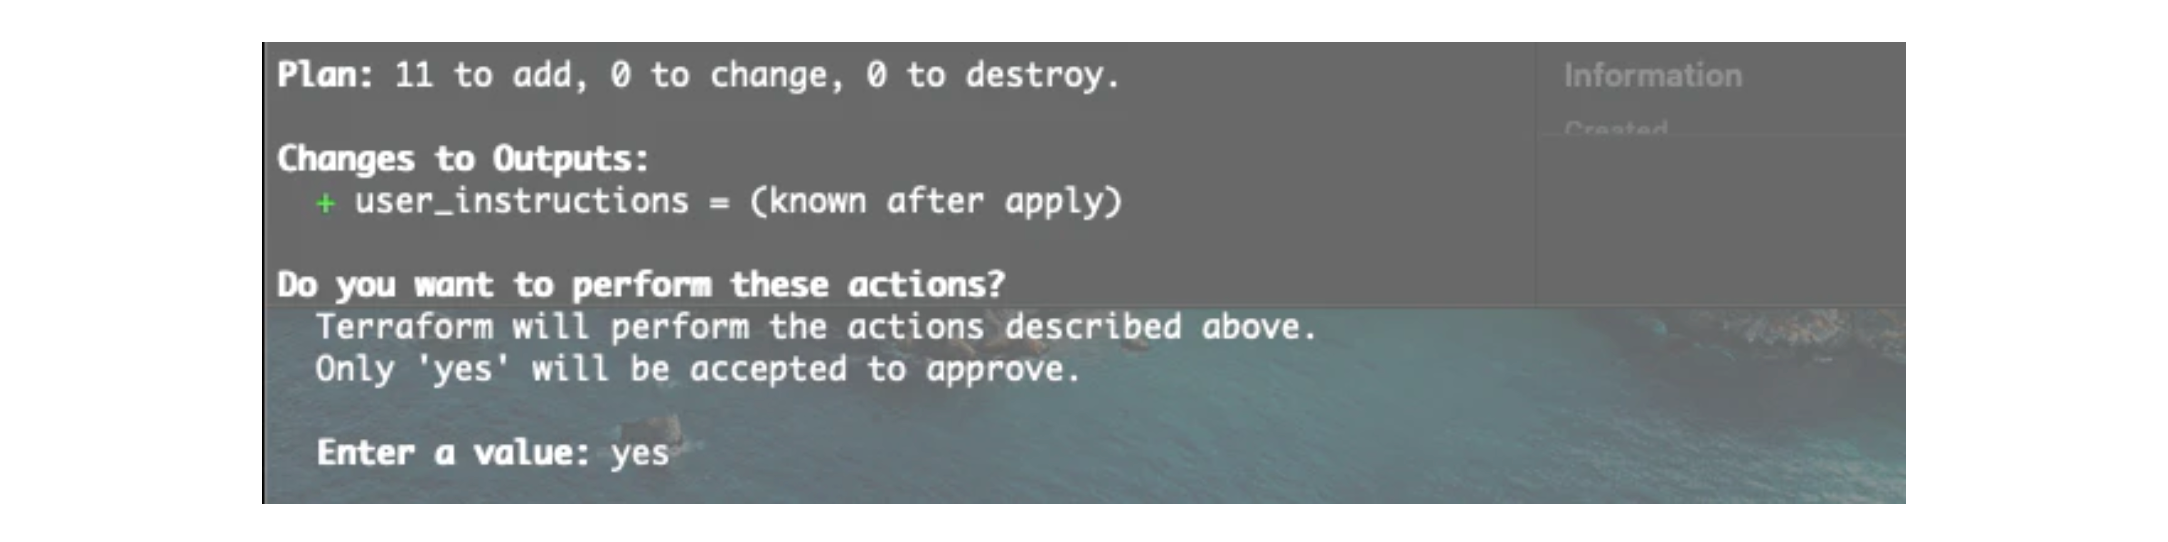 Confirm actions